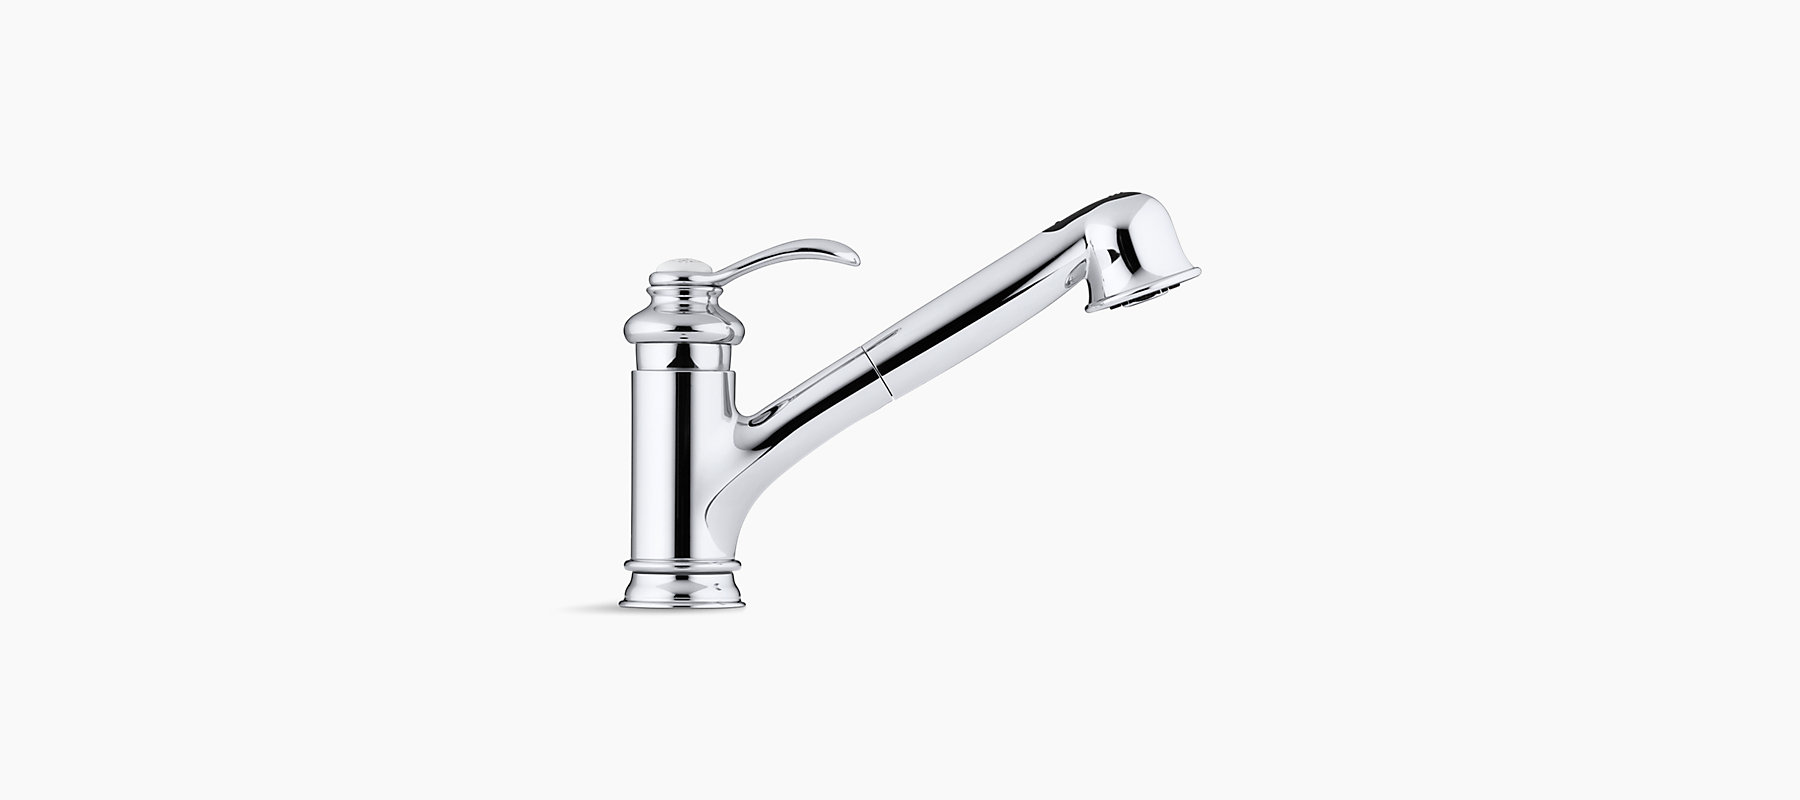 Discontinued Kohler Bathroom Faucet Parts Auto Electrical Wiring Delta 1755716 List And Diagram Ereplacementpartscom Related With